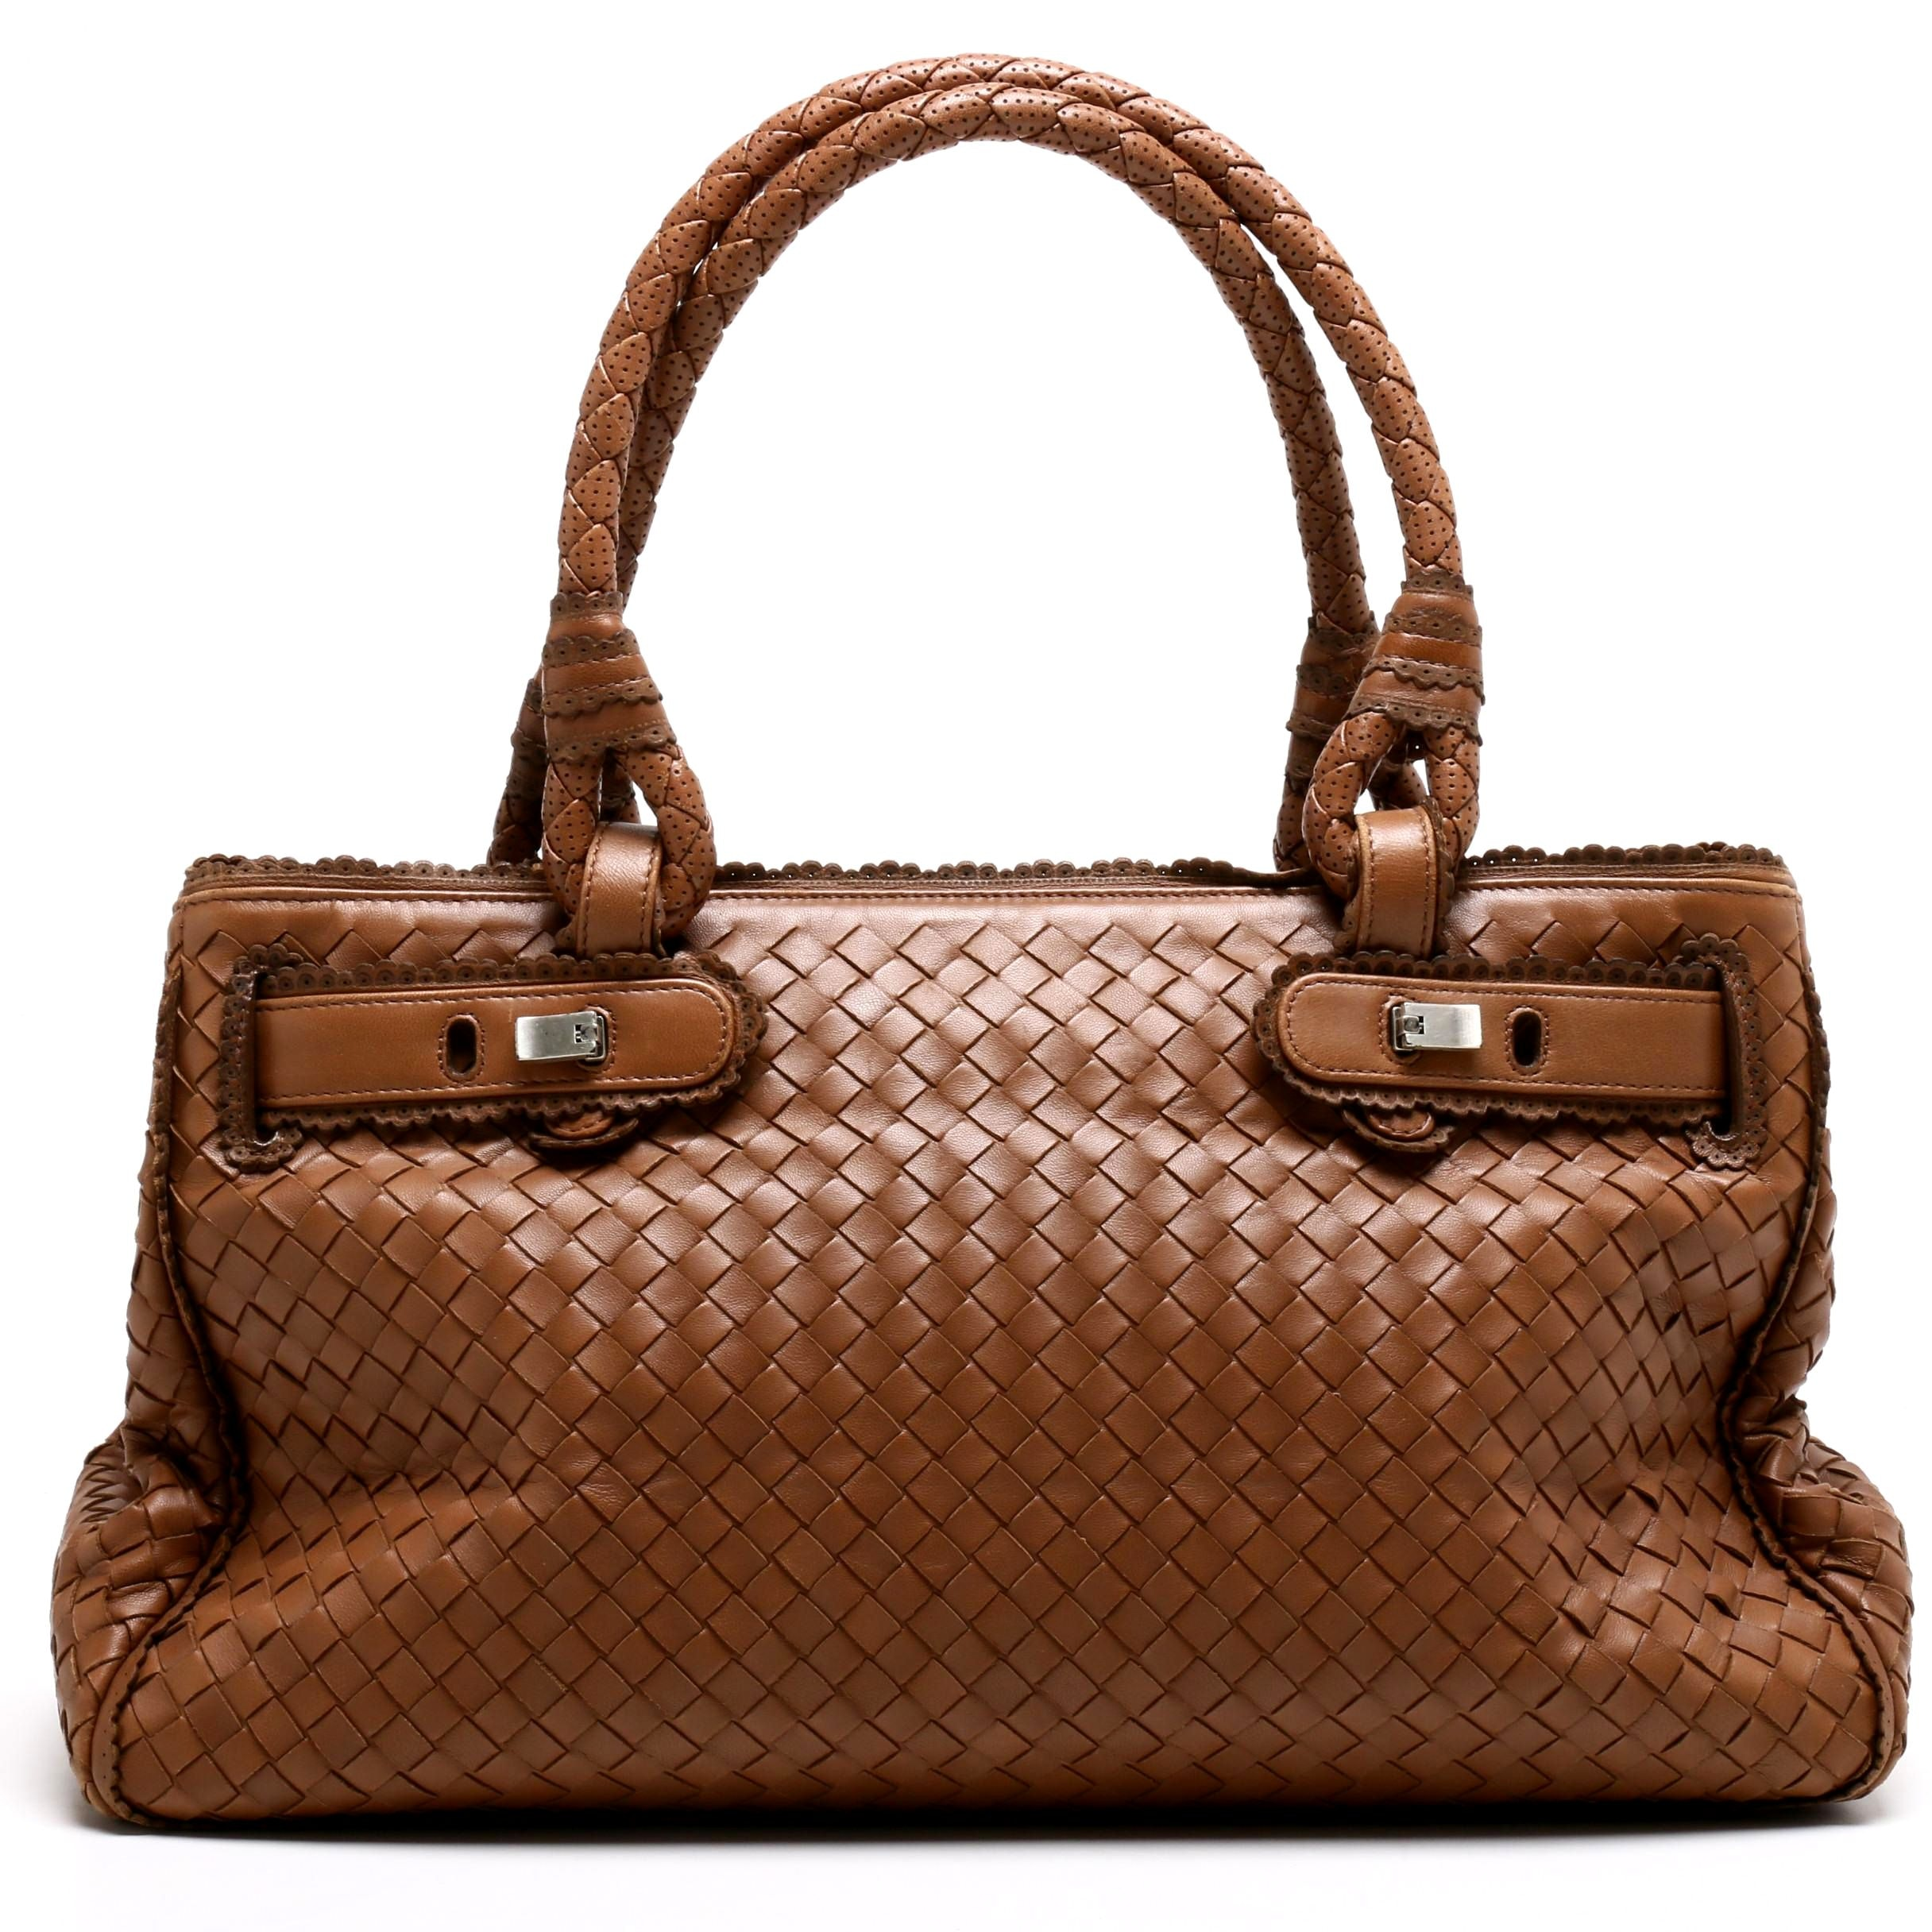 Bottega Veneta Light Brown Intrecciato Woven Leather Tote Bag